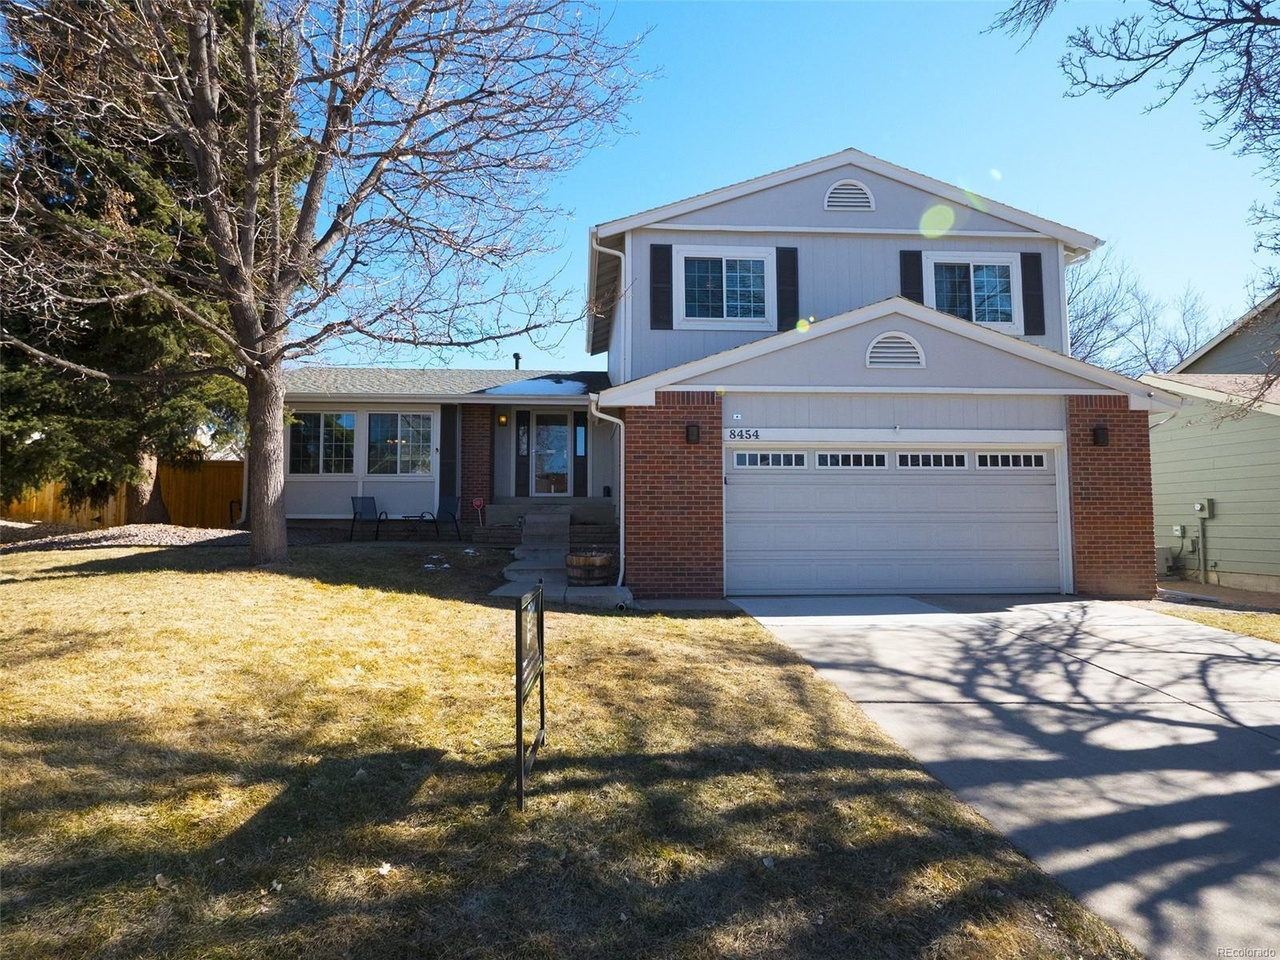 8454 Tanglewood St, Highlands Ranch, CO 80126 | MLS# 5104504 | Redfin